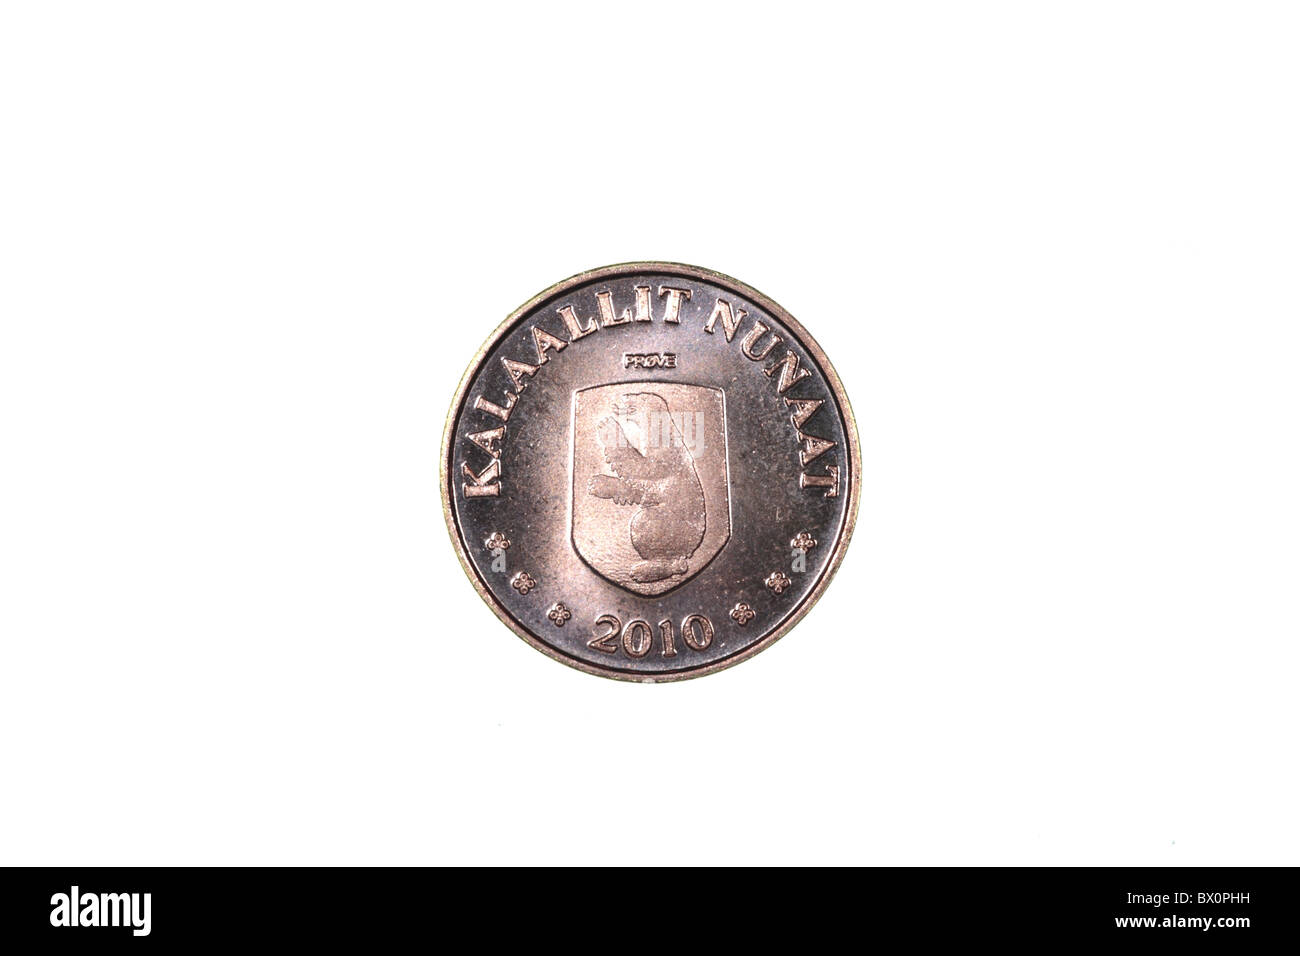 Coin - Greenland - Stock Image